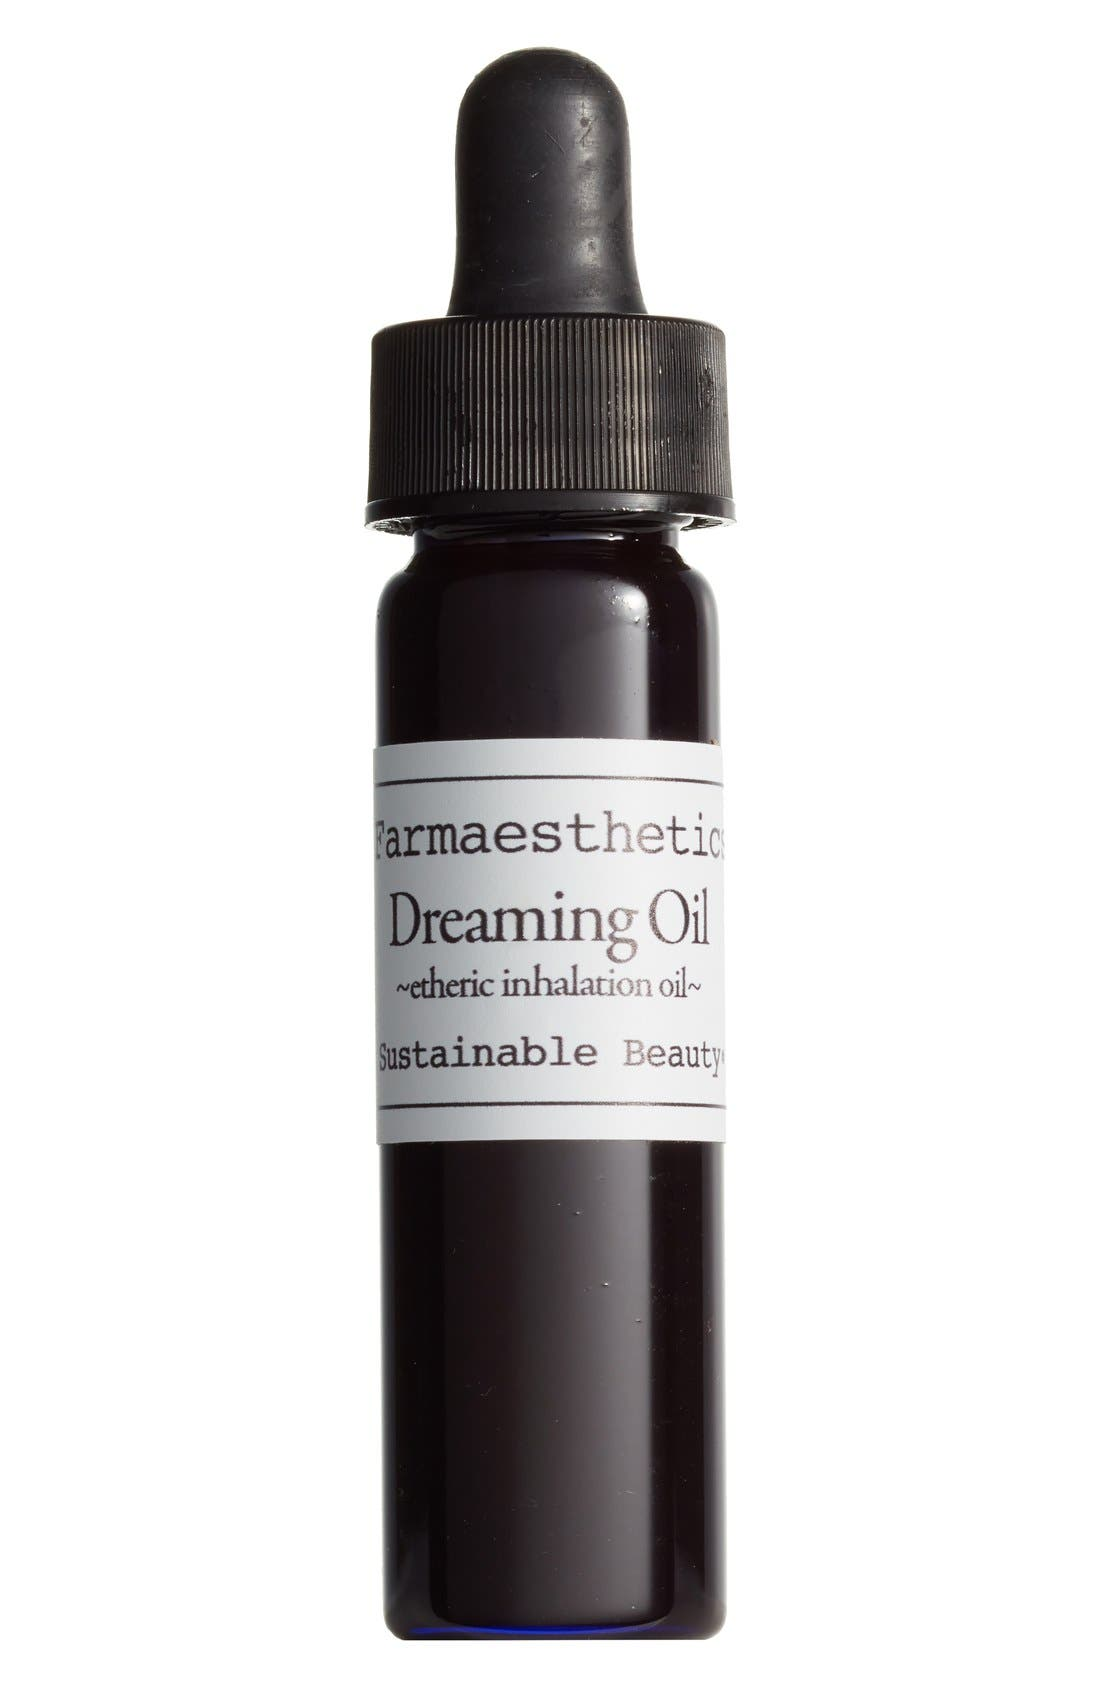 Farmaesthetics Dreaming Etheric Inhalation Oil